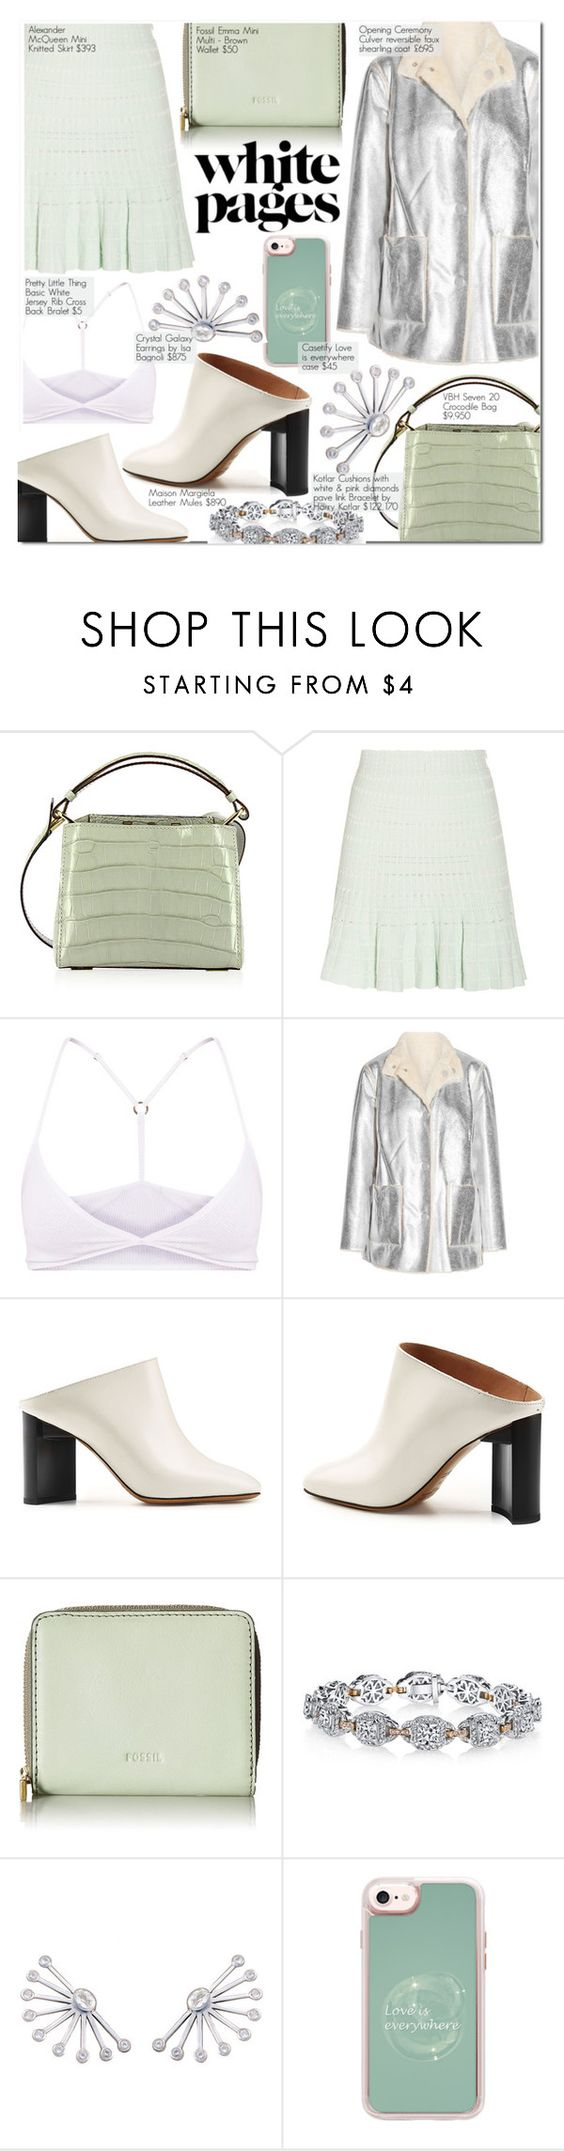 """""""Brooke"""" by nindi-wijaya ❤ liked on Polyvore featuring VBH, Alexander McQueen, Opening Ceremony, Maison Margiela, FOSSIL, Harry Kotlar and Casetify"""